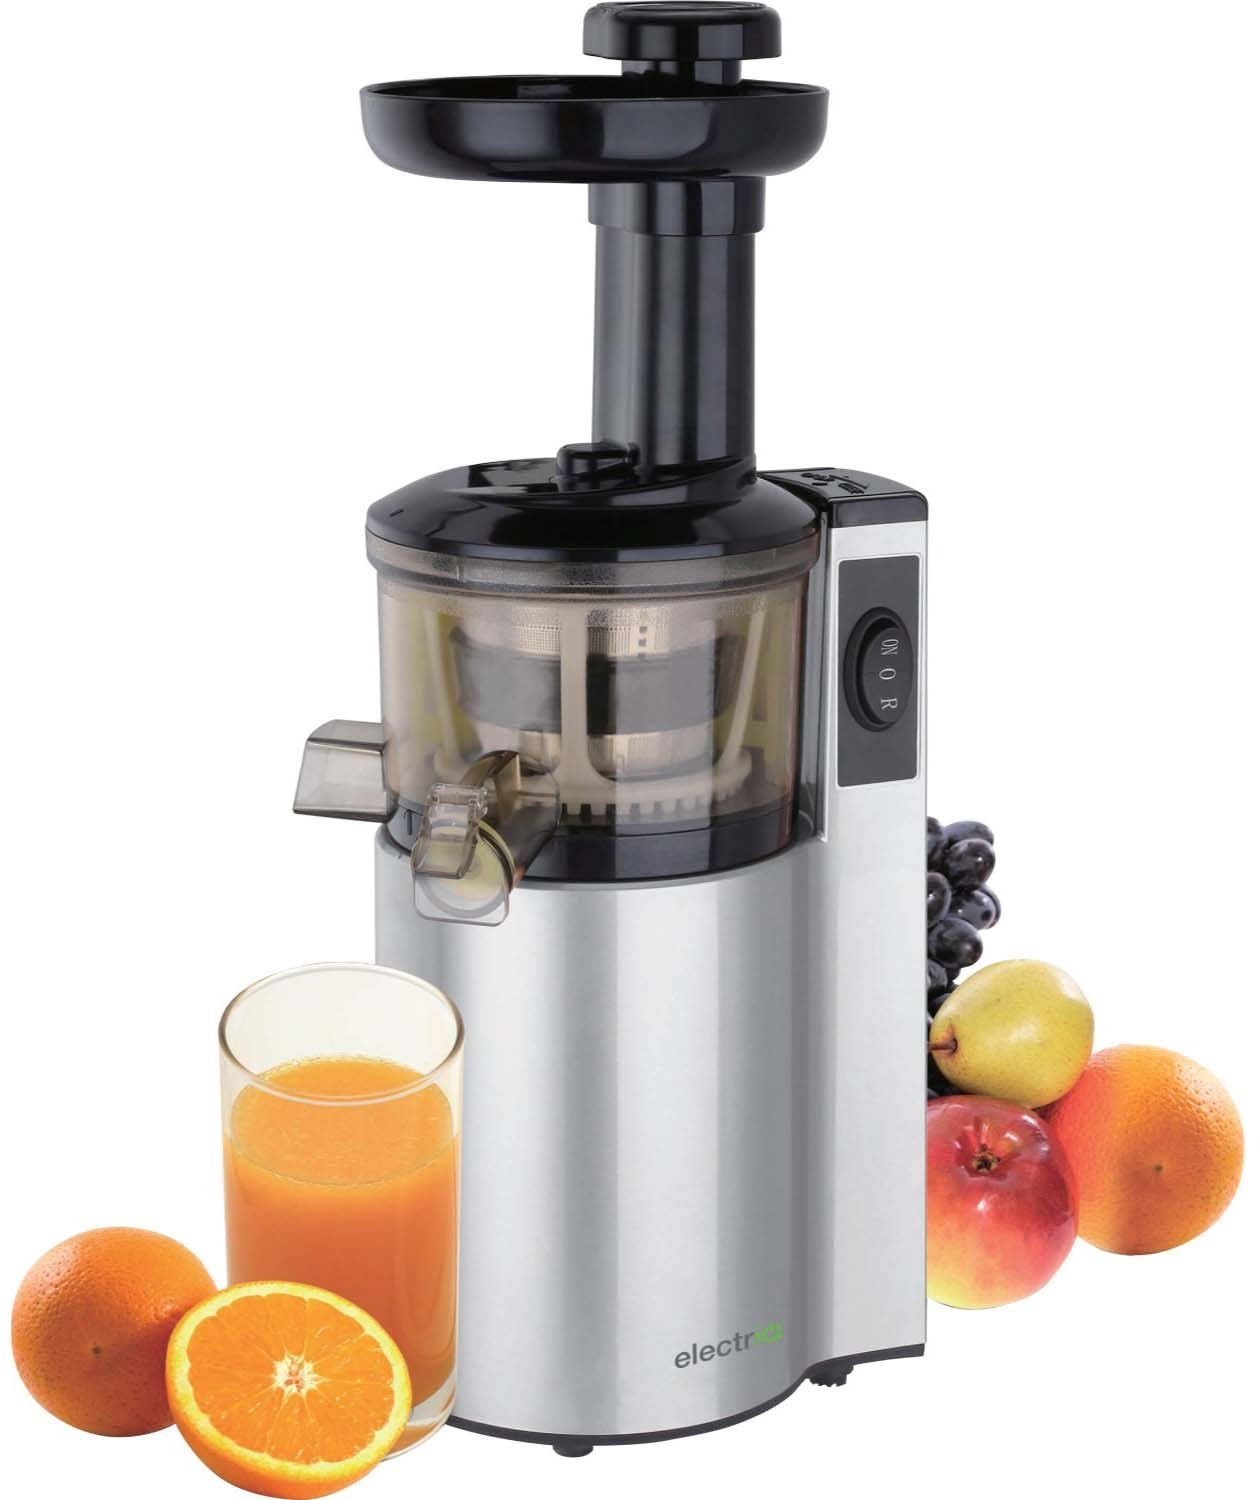 Slow Juicer For Greens : ElectriQ Premium Slow Juicer great for cold pressed Greens Juices and Smoothies - BPA Free ...